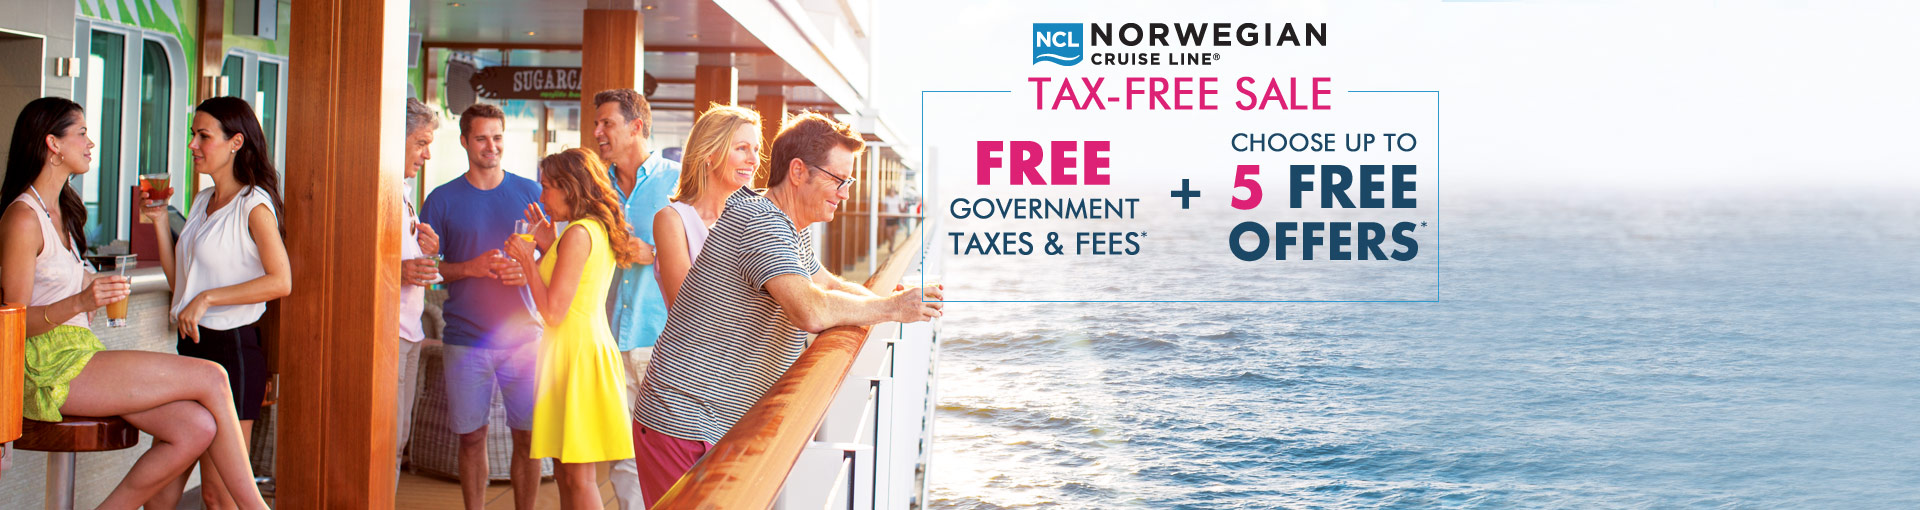 Norwegian Cruise Line: Tax-Free Sale + up to 5 Free Offers